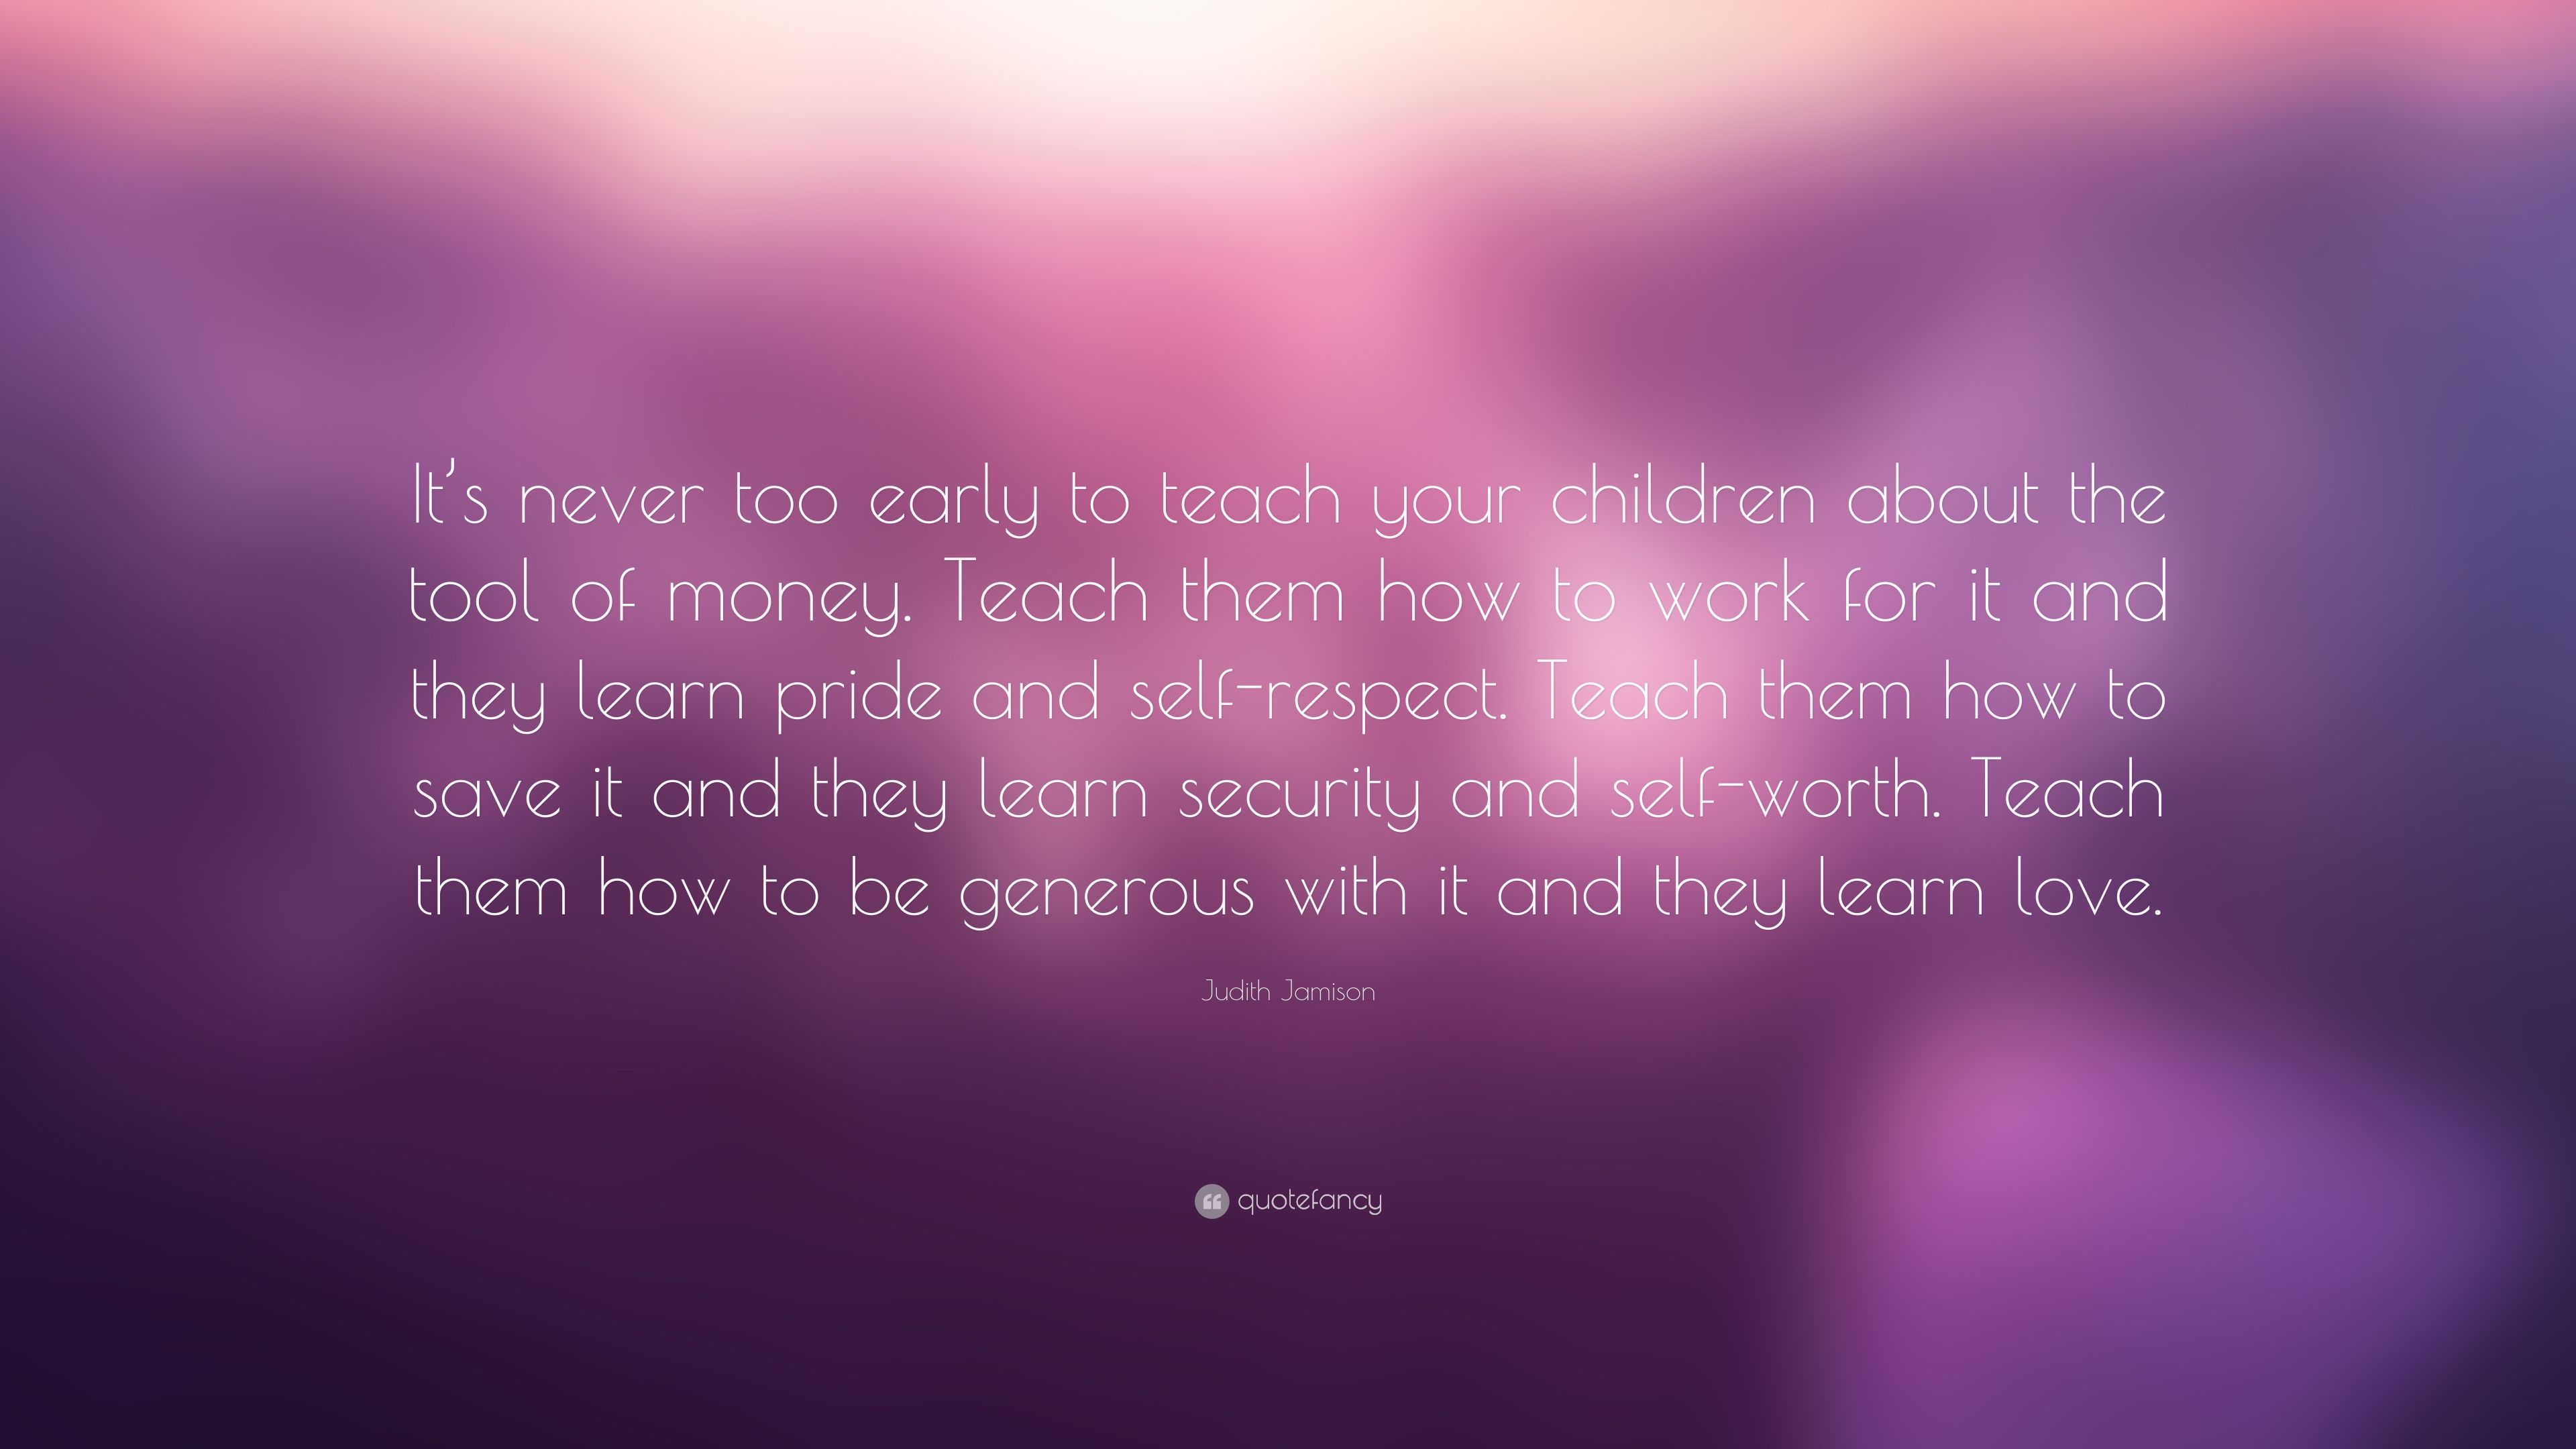 it's never too early to teach When kids understand how content is made, they begin to understand how it can be manipulated.